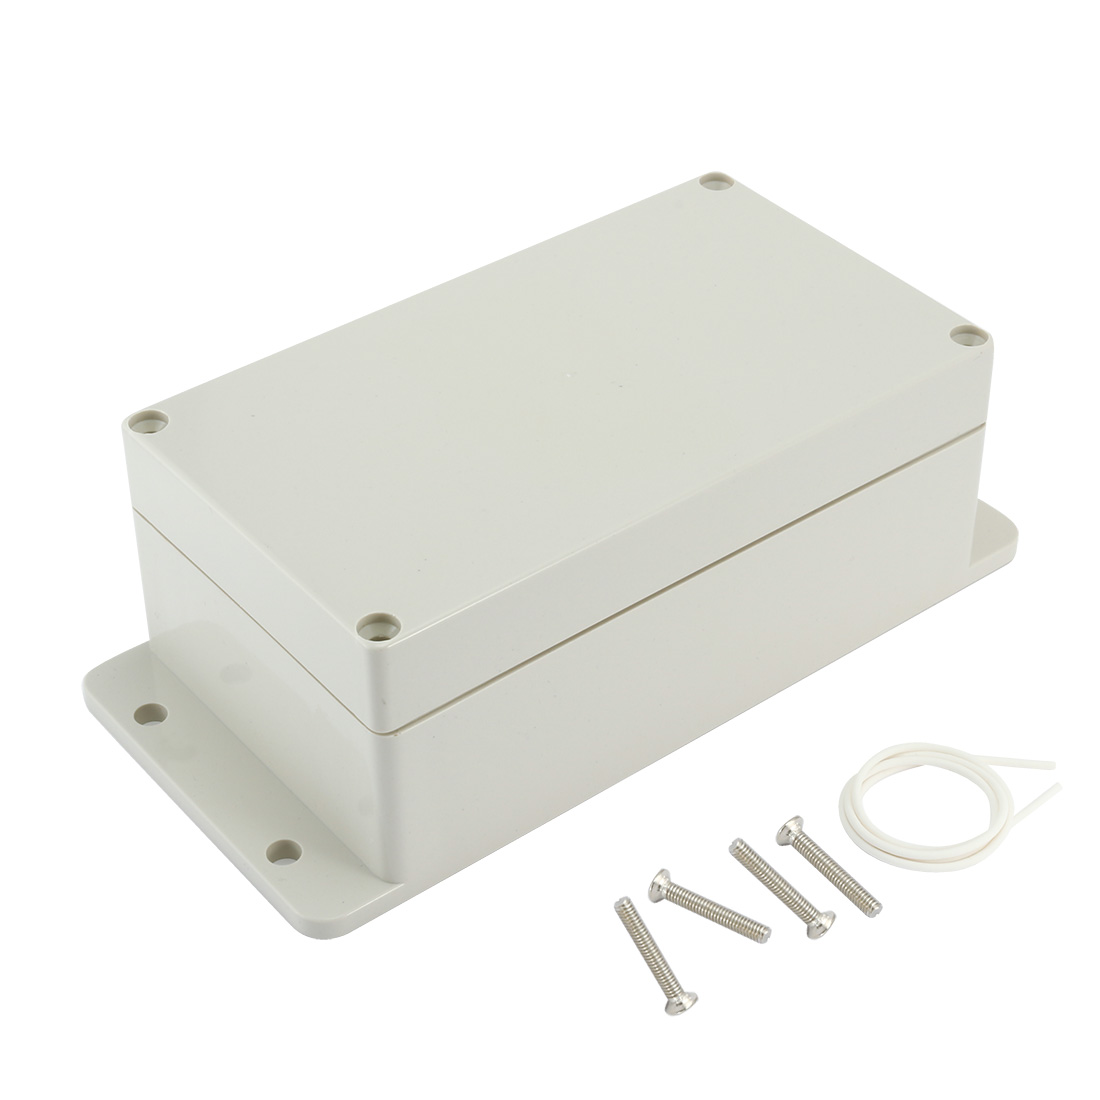 """6.2""""x3.54""""x2.51""""ABS Junction Box Universal Electric Project Enclosure"""